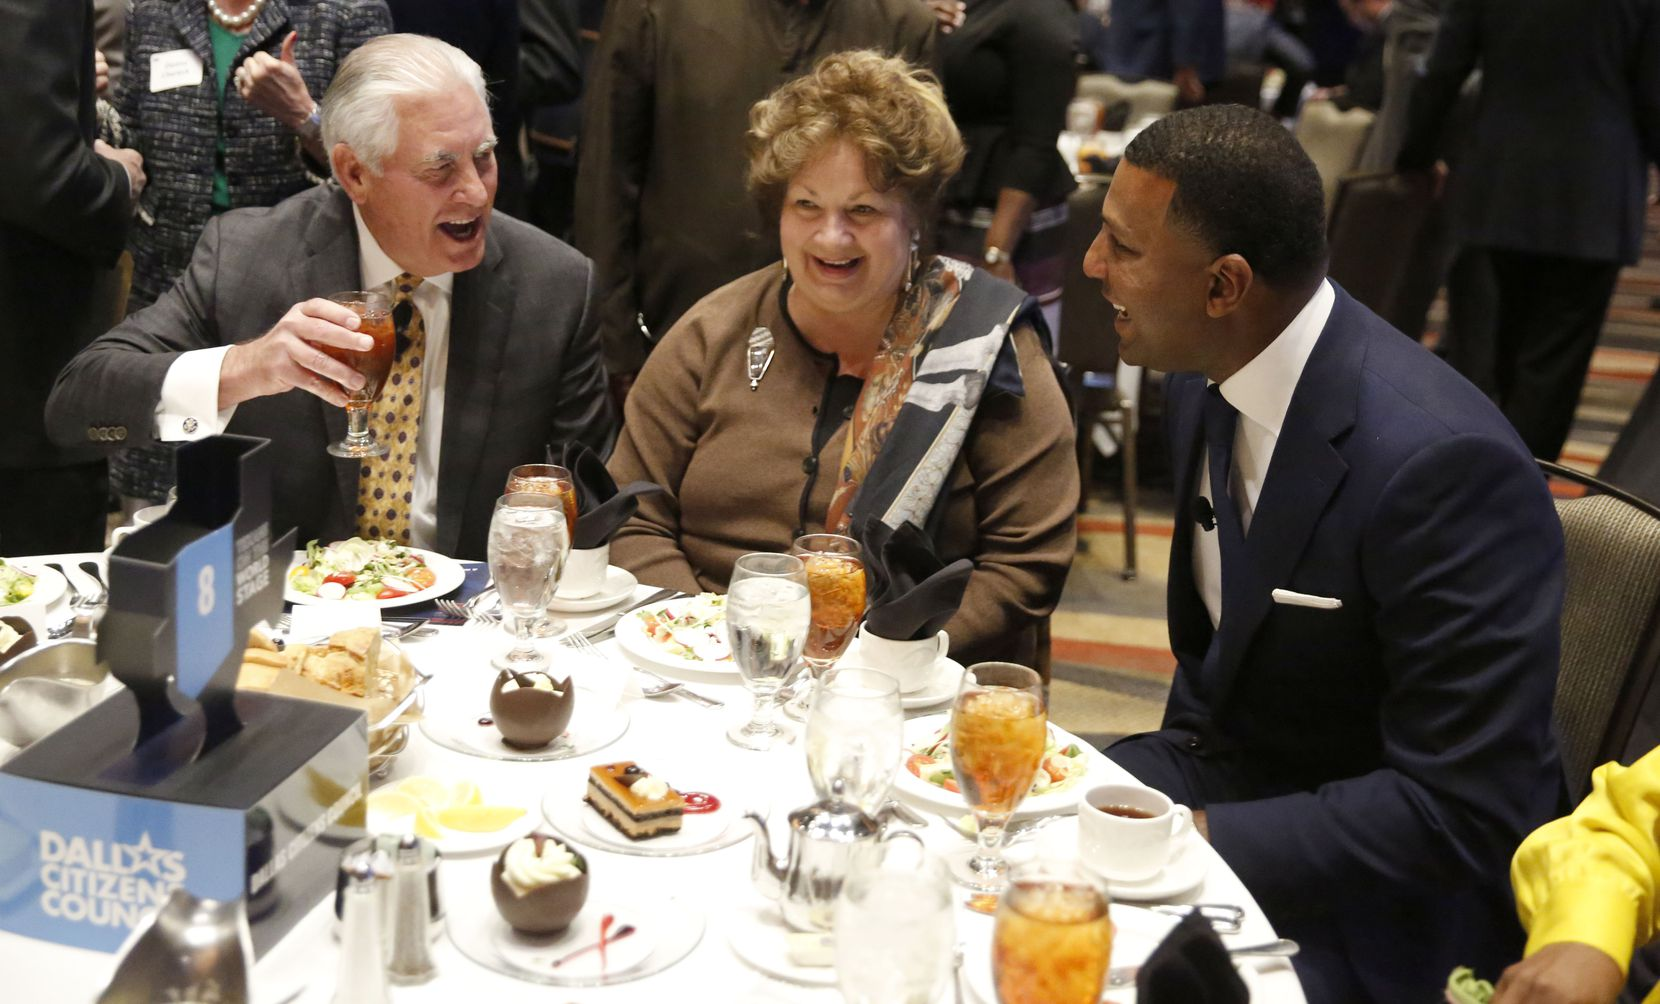 Rex Tillerson (left), former U.S. secretary of state and former chairman and CEO of Exxon Mobil, laughed with his wife, Renda St. Claire, and Fred Perpall before the Dallas Citizens Council meeting at the Hyatt Regency Hotel in December 2018.